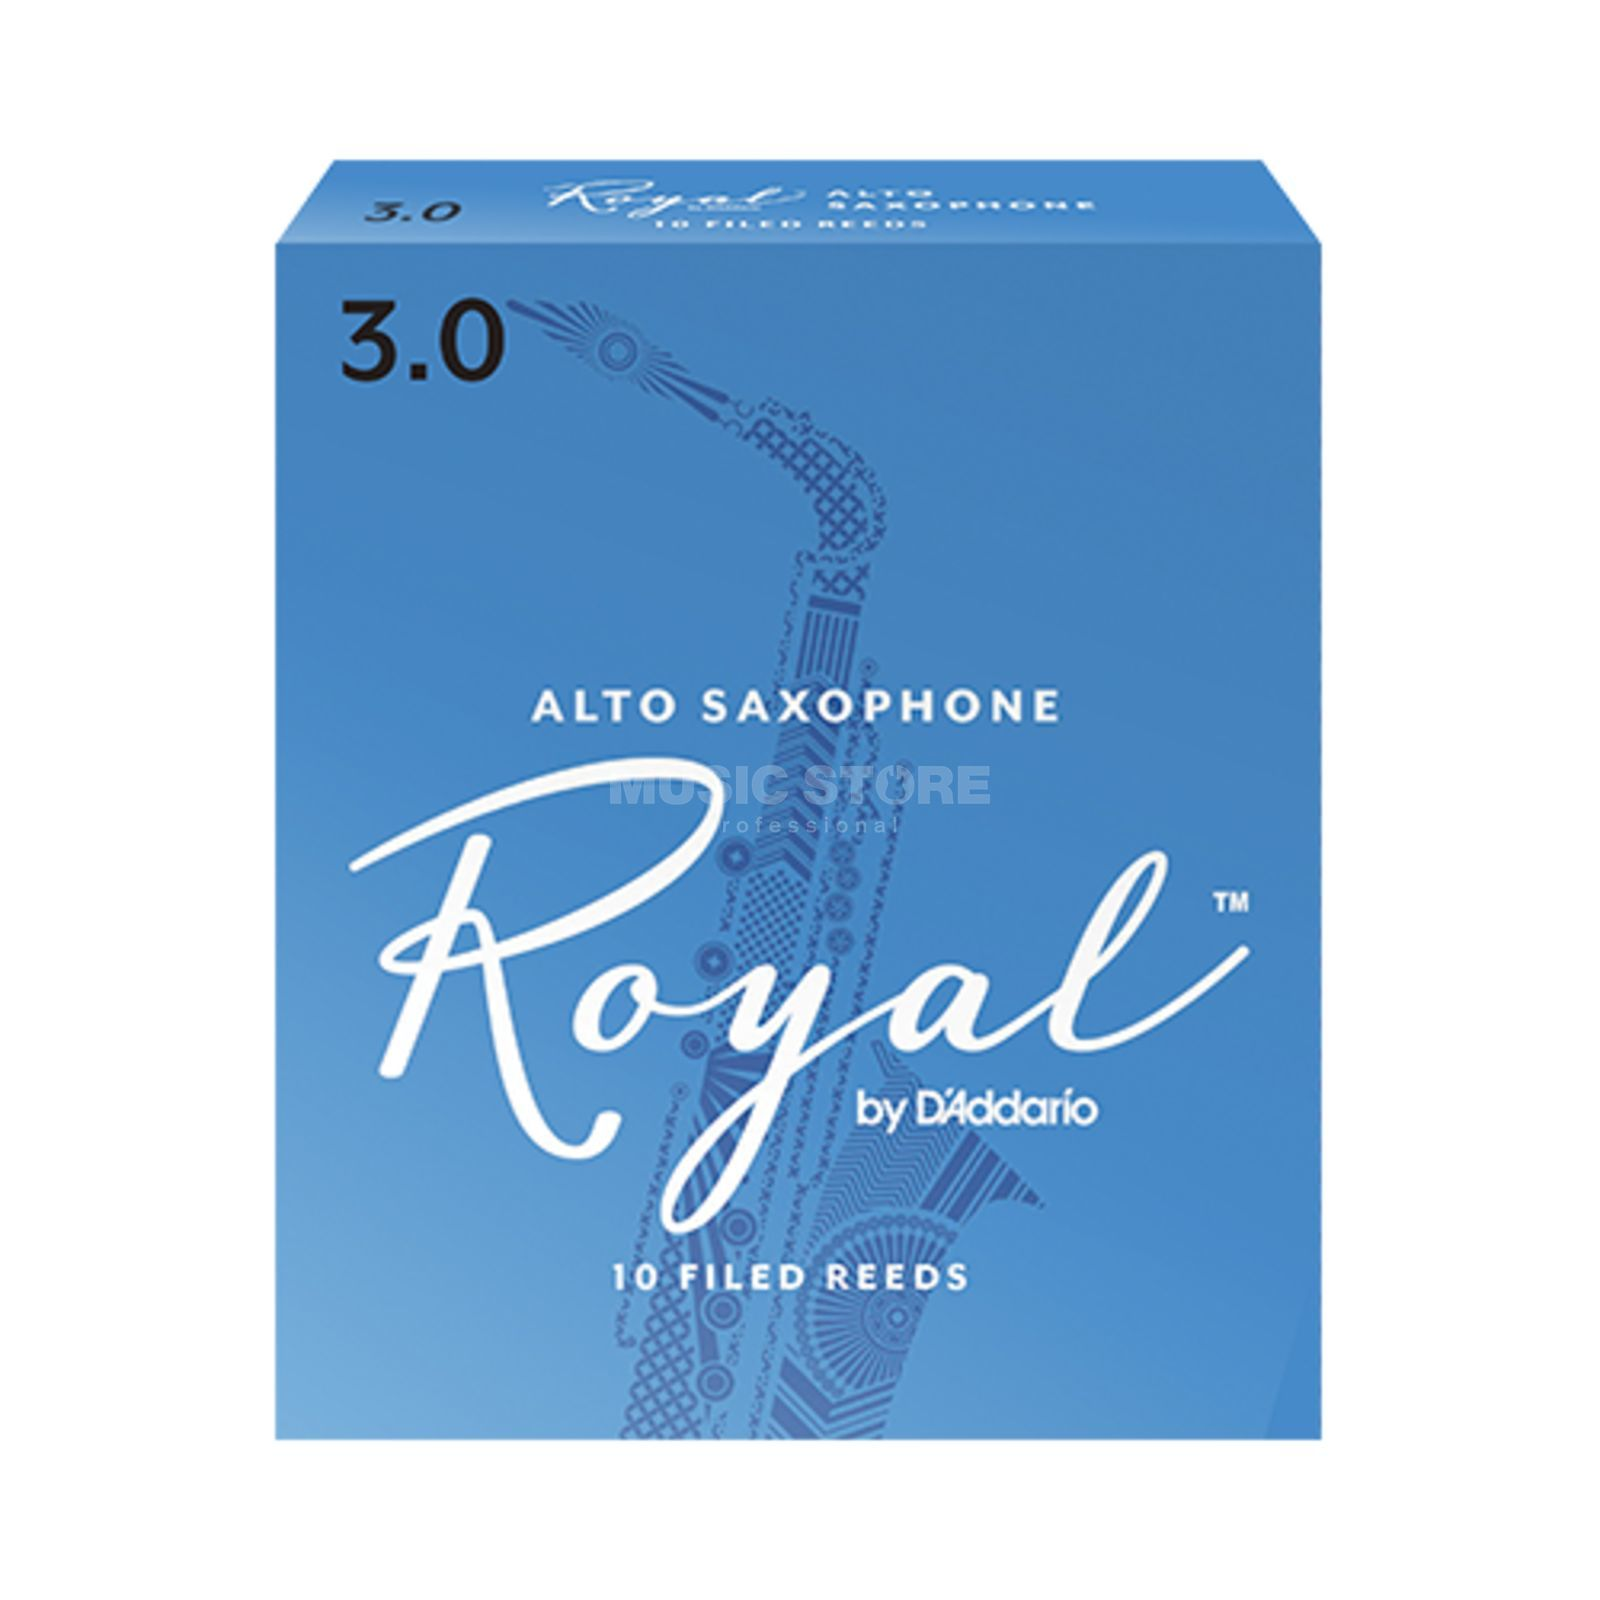 D'Addario Alto Saxophone Reeds 3 Box of 10 Product Image